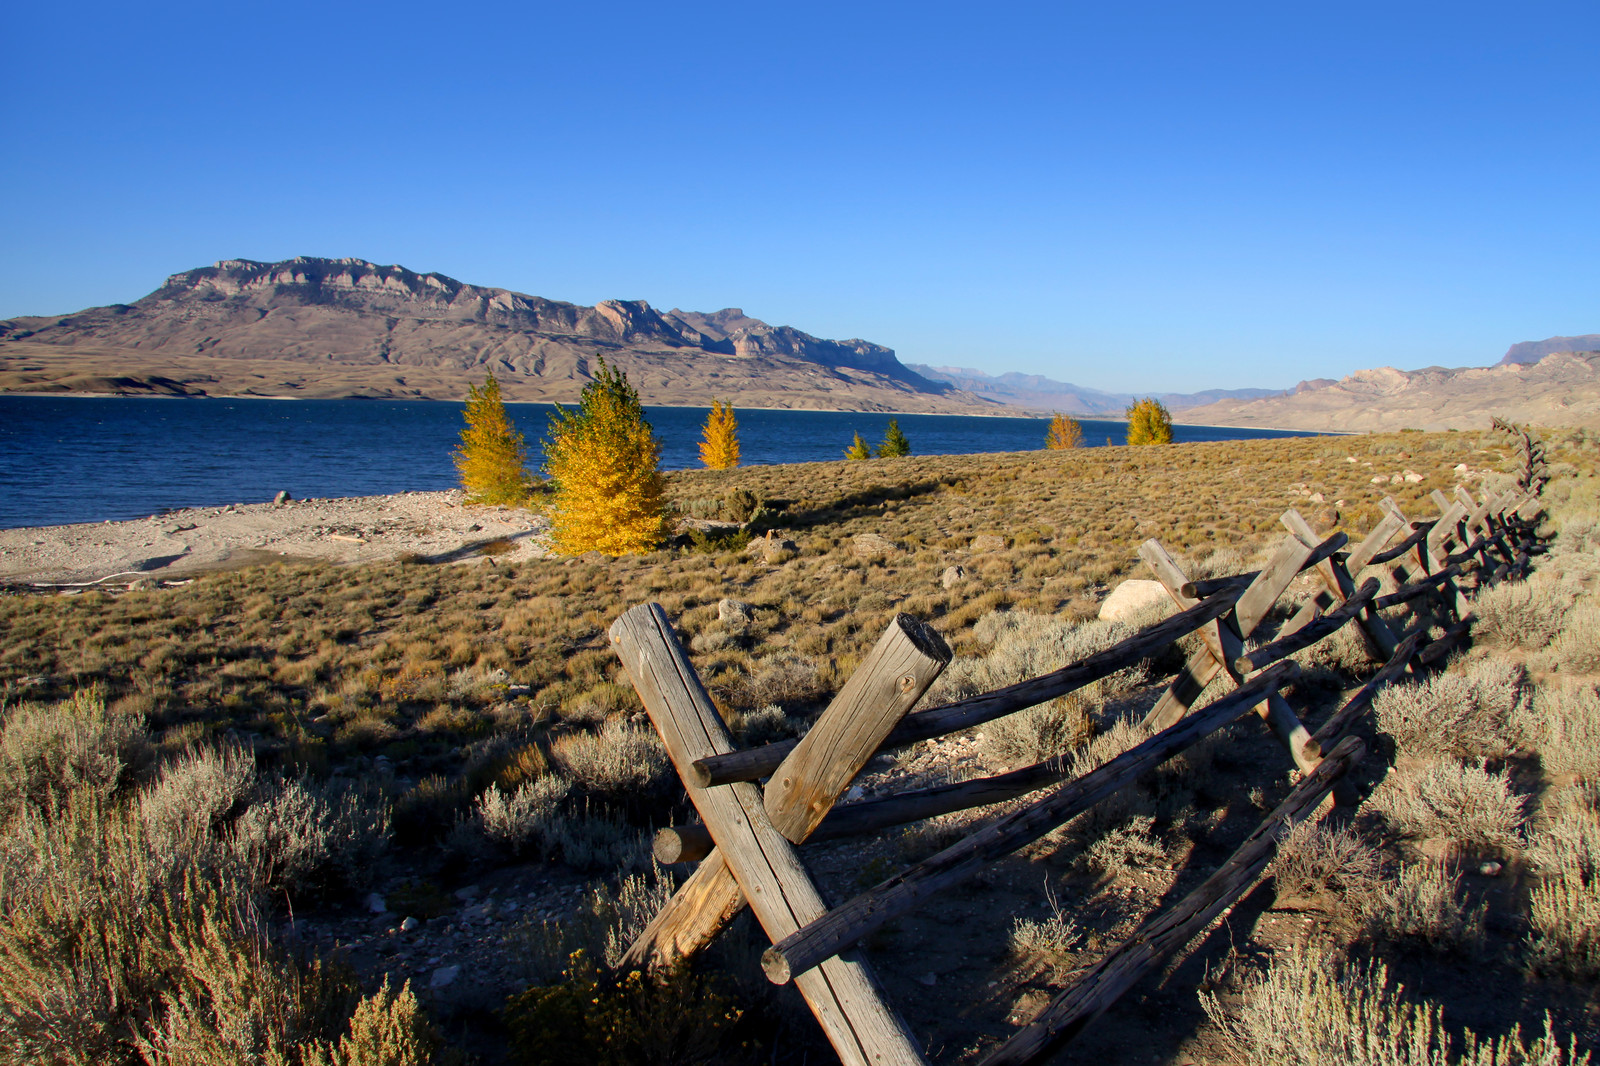 Cody resevoir with hills in the background and blue skies with a wood fence lining the lake